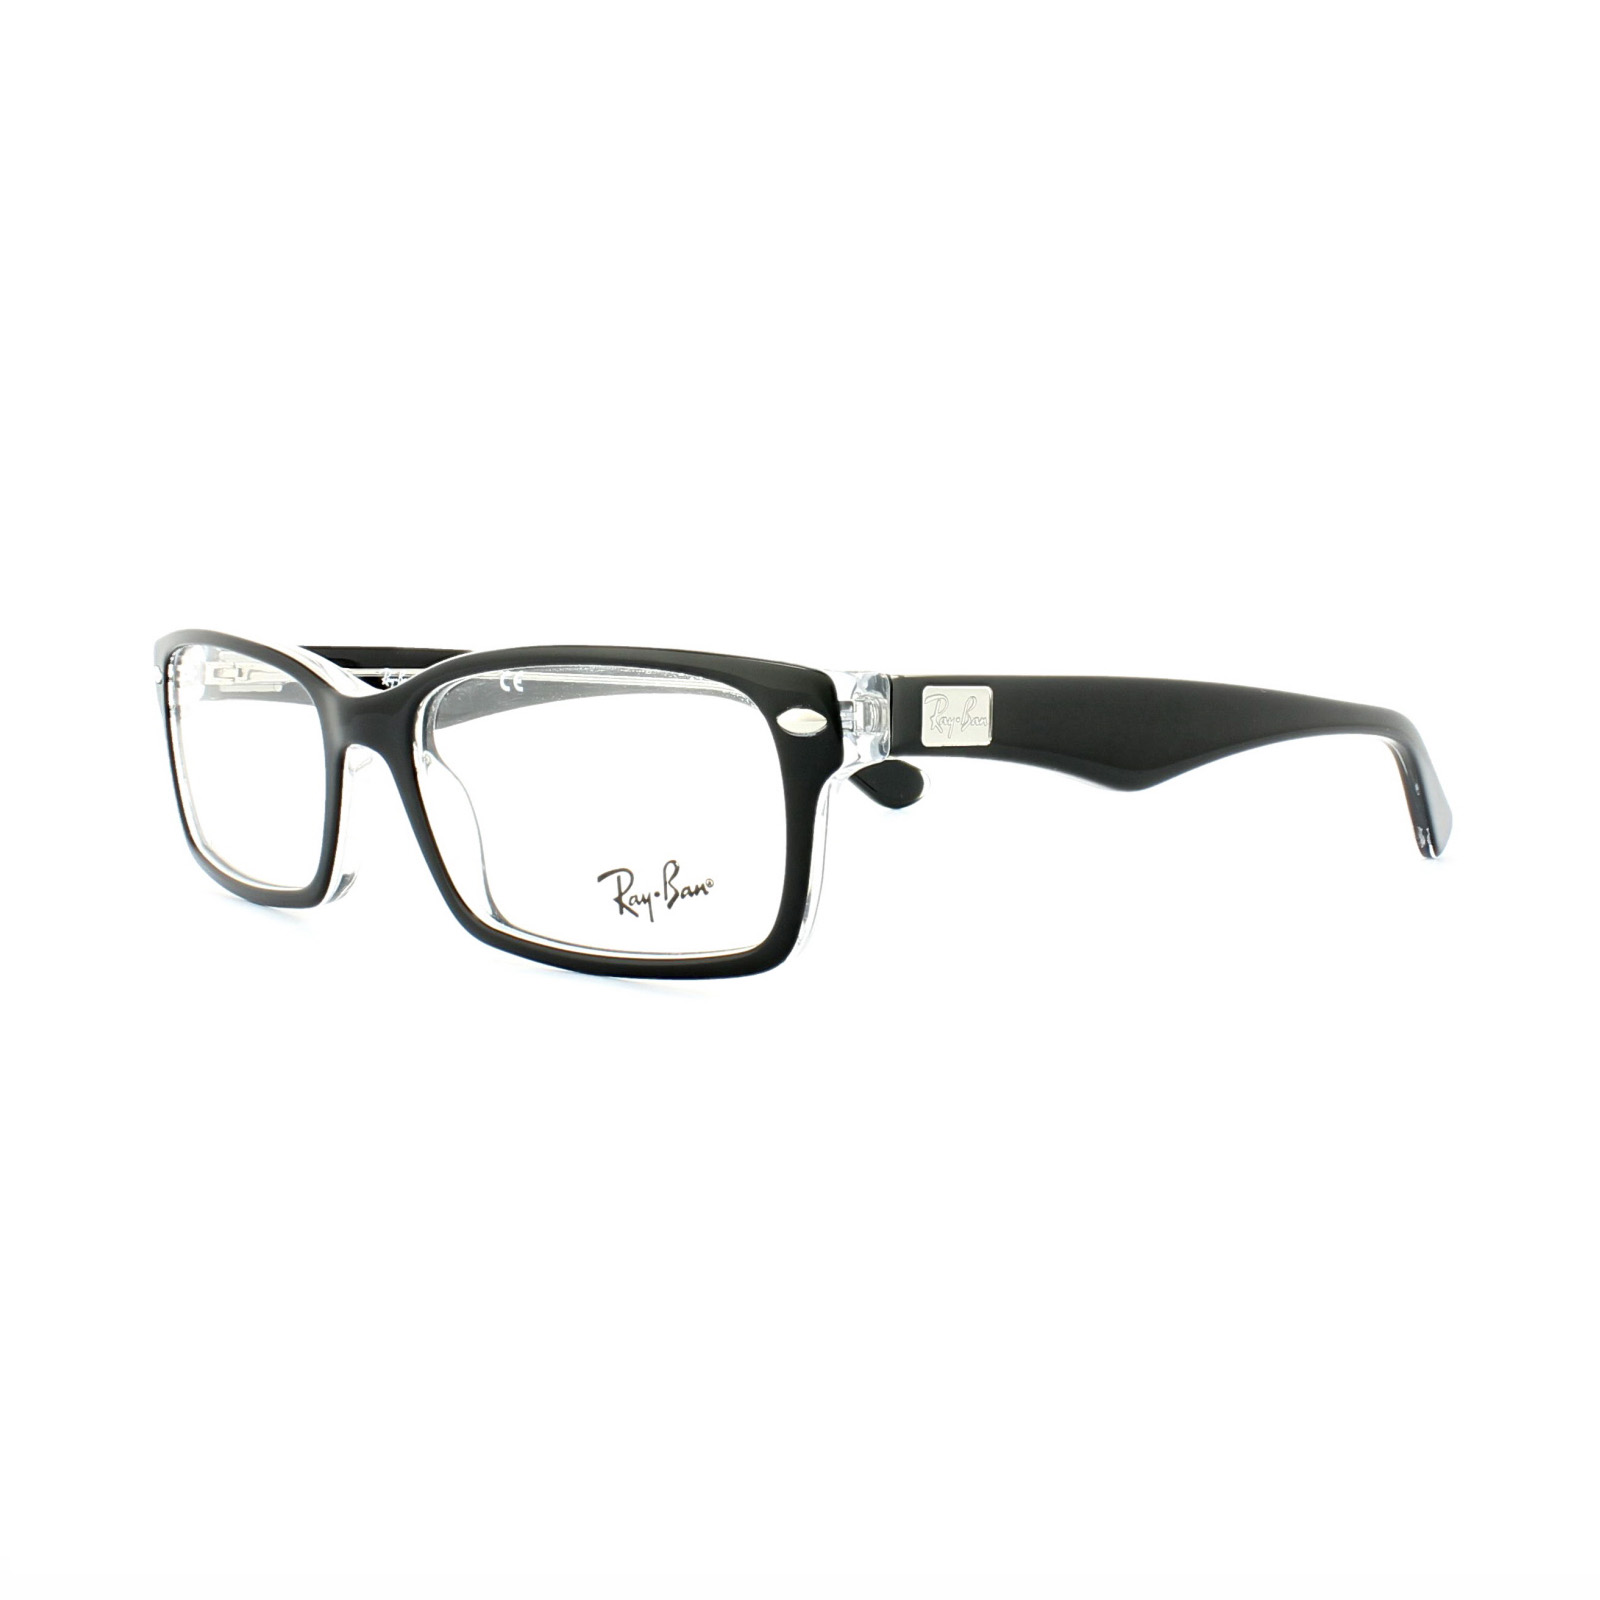 2abf9a35f09 Sentinel Ray-Ban Glasses Frames 5206 2034 Top Black on Transparent